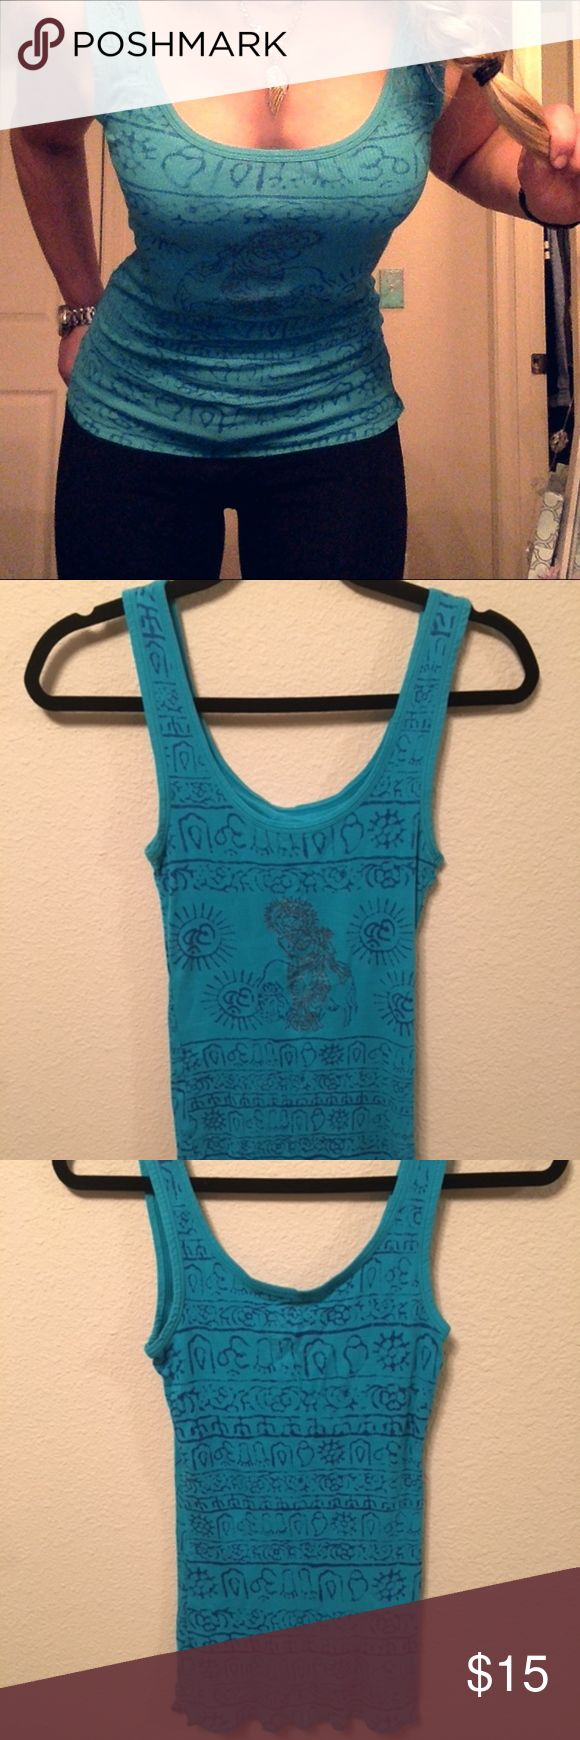 FREE PEOPLE Turquoise Aztec Tank Top Women's Free People tank top in a size small. Turquoise color with dark blue design/symbols and glitter accents. In excellent condition, with no stains, holes, rips, or fading. Free People Tops Tank Tops